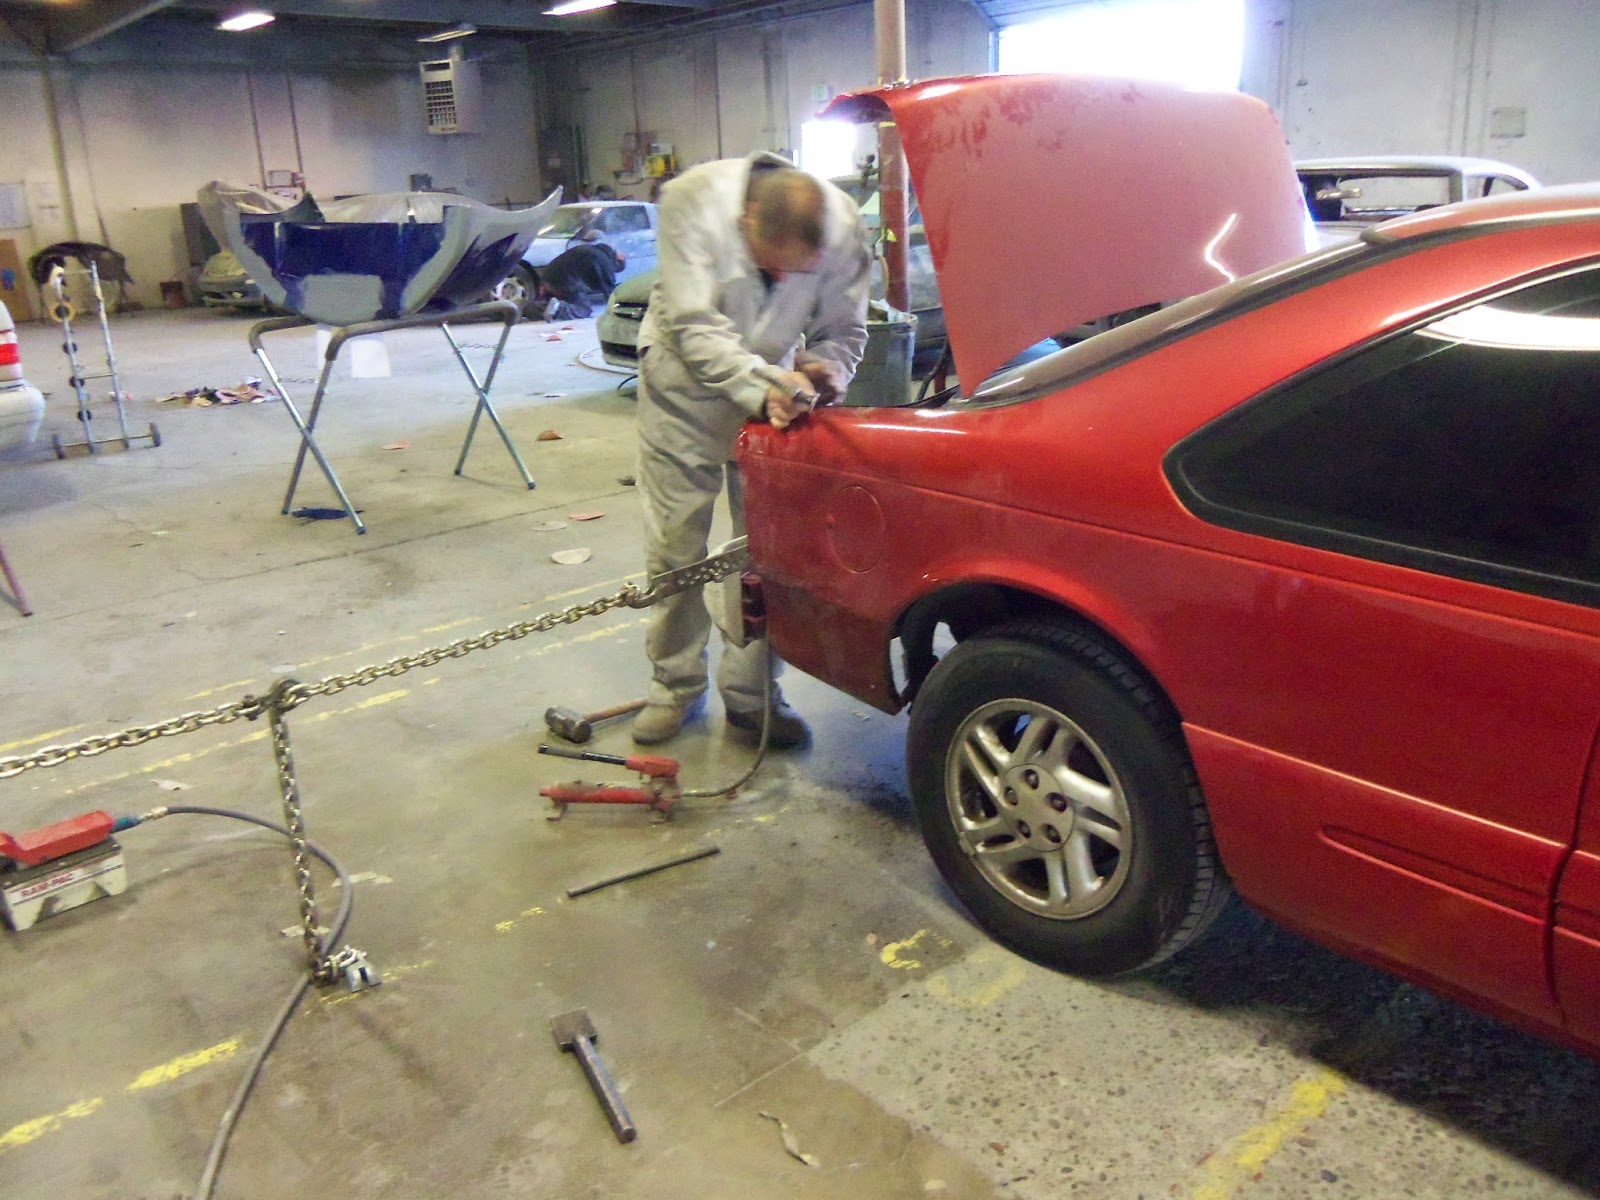 Collision damage being repaired at Almost Everything Auto Body